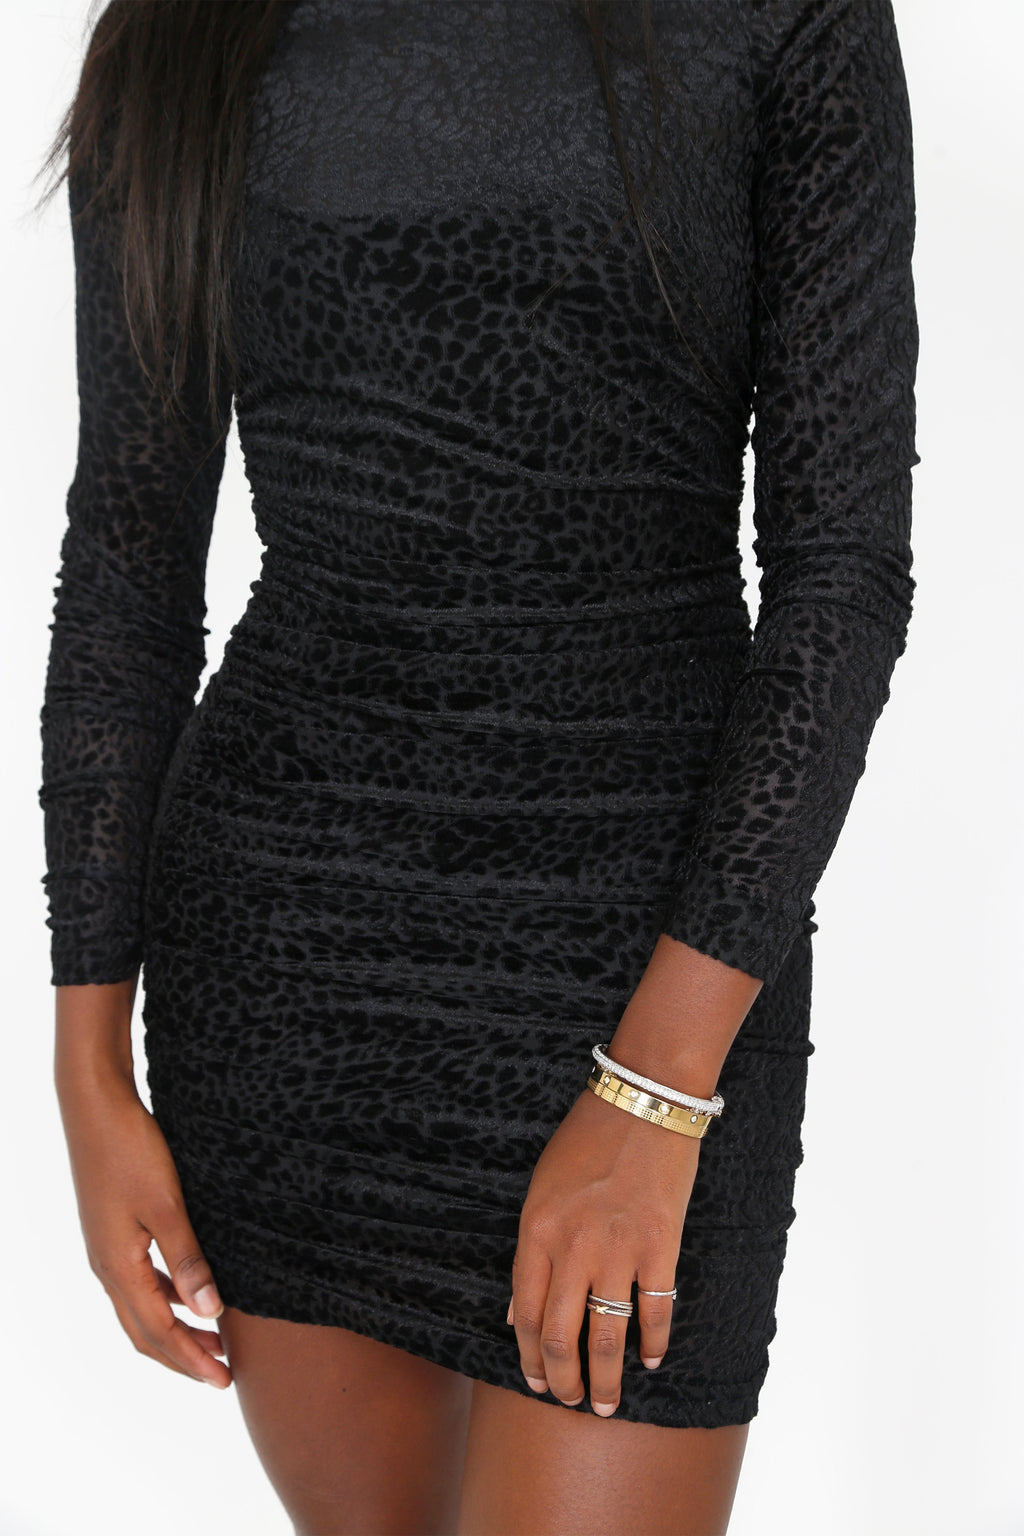 LIKELY | Wylie Dress - Leopard Burnout